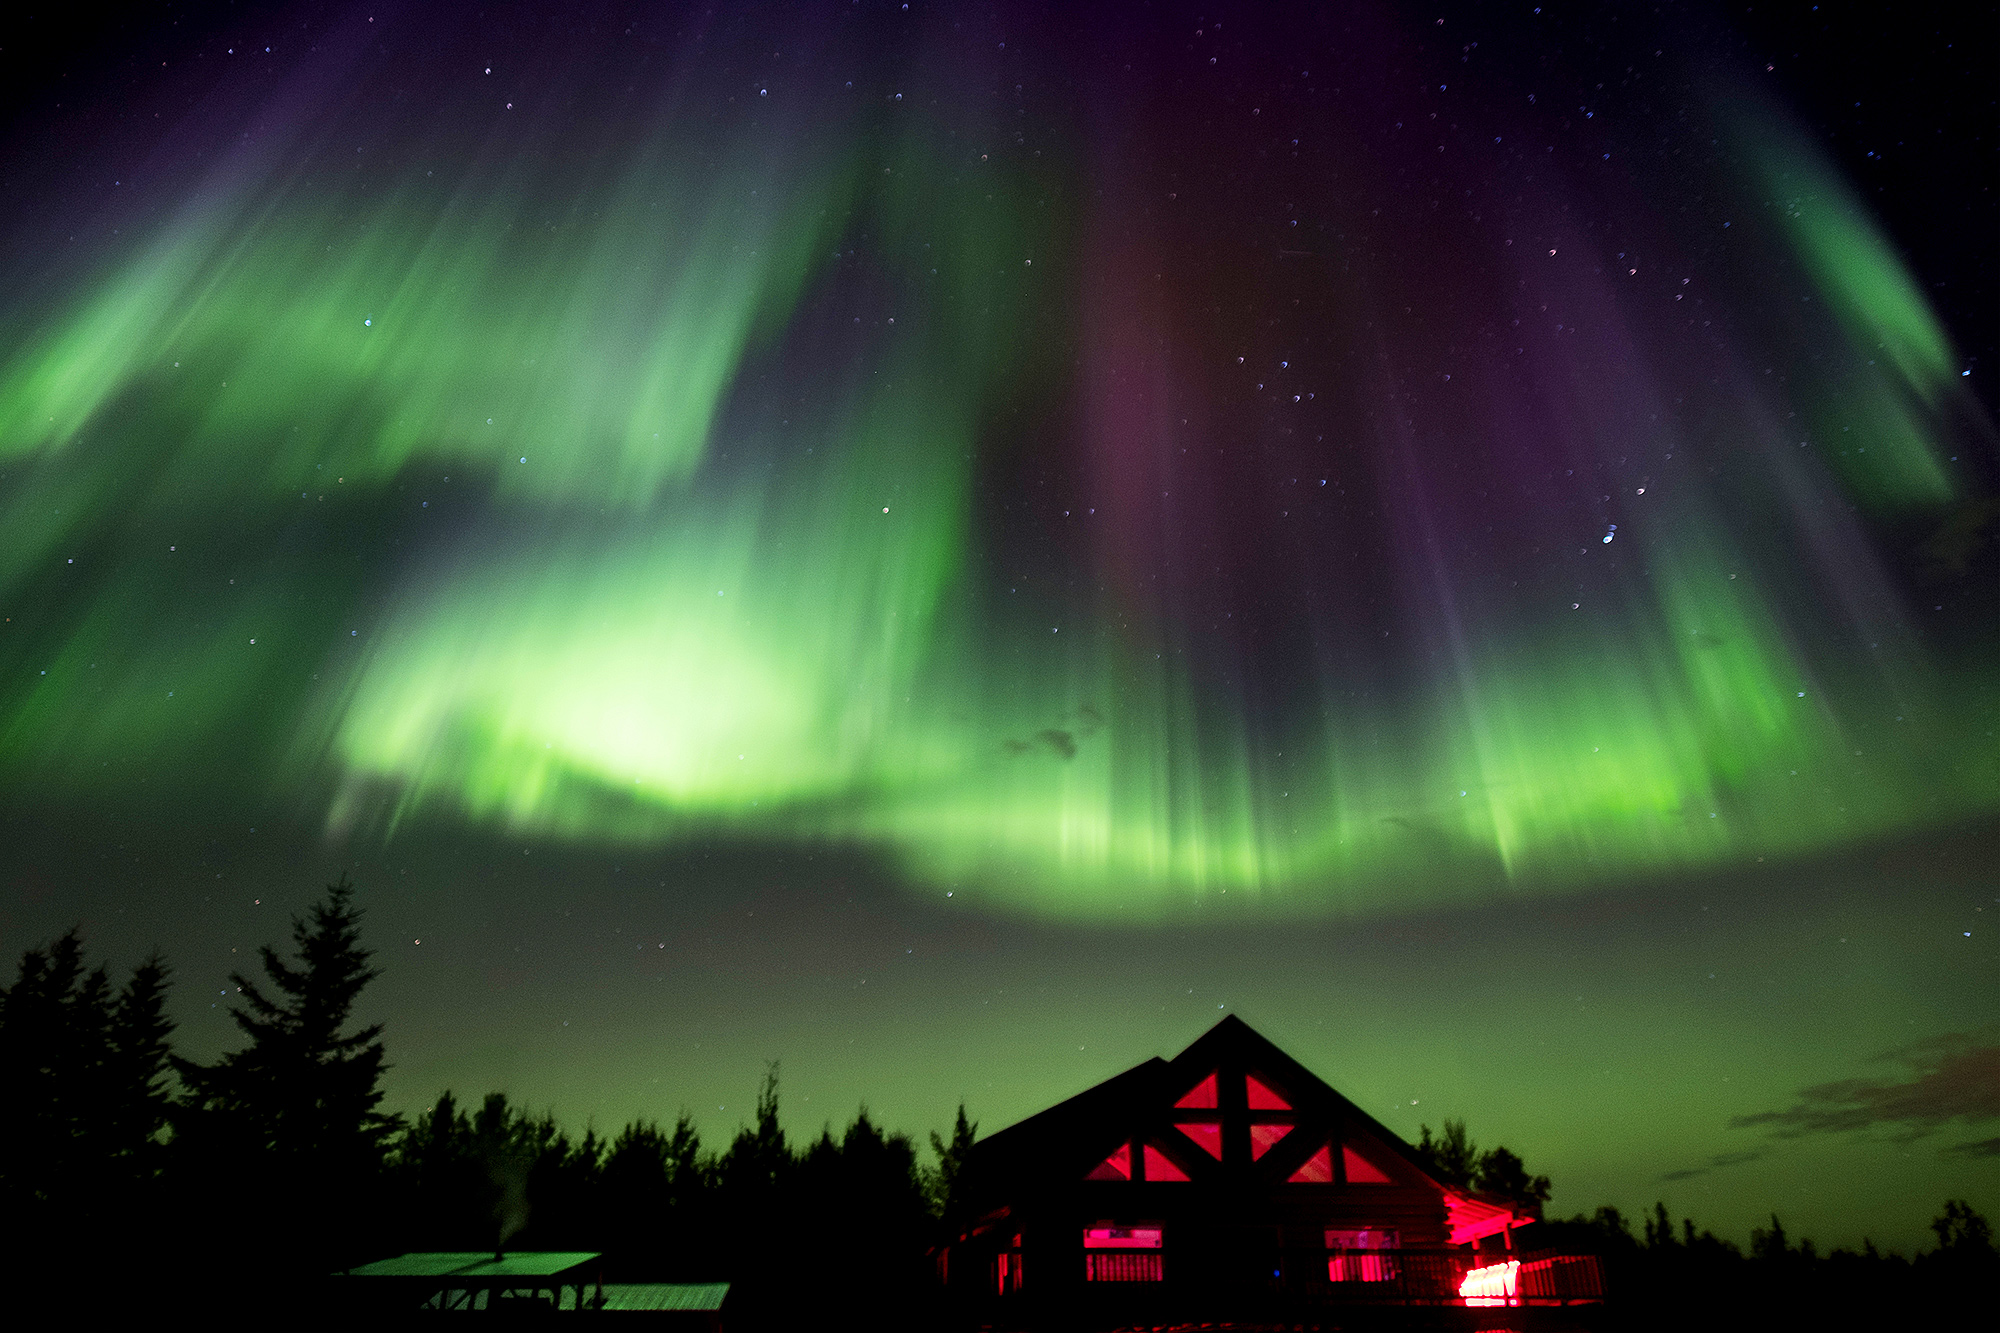 a cabin glows a warm red beneath the green and purple Aurora Borealis lights in a starry night sky